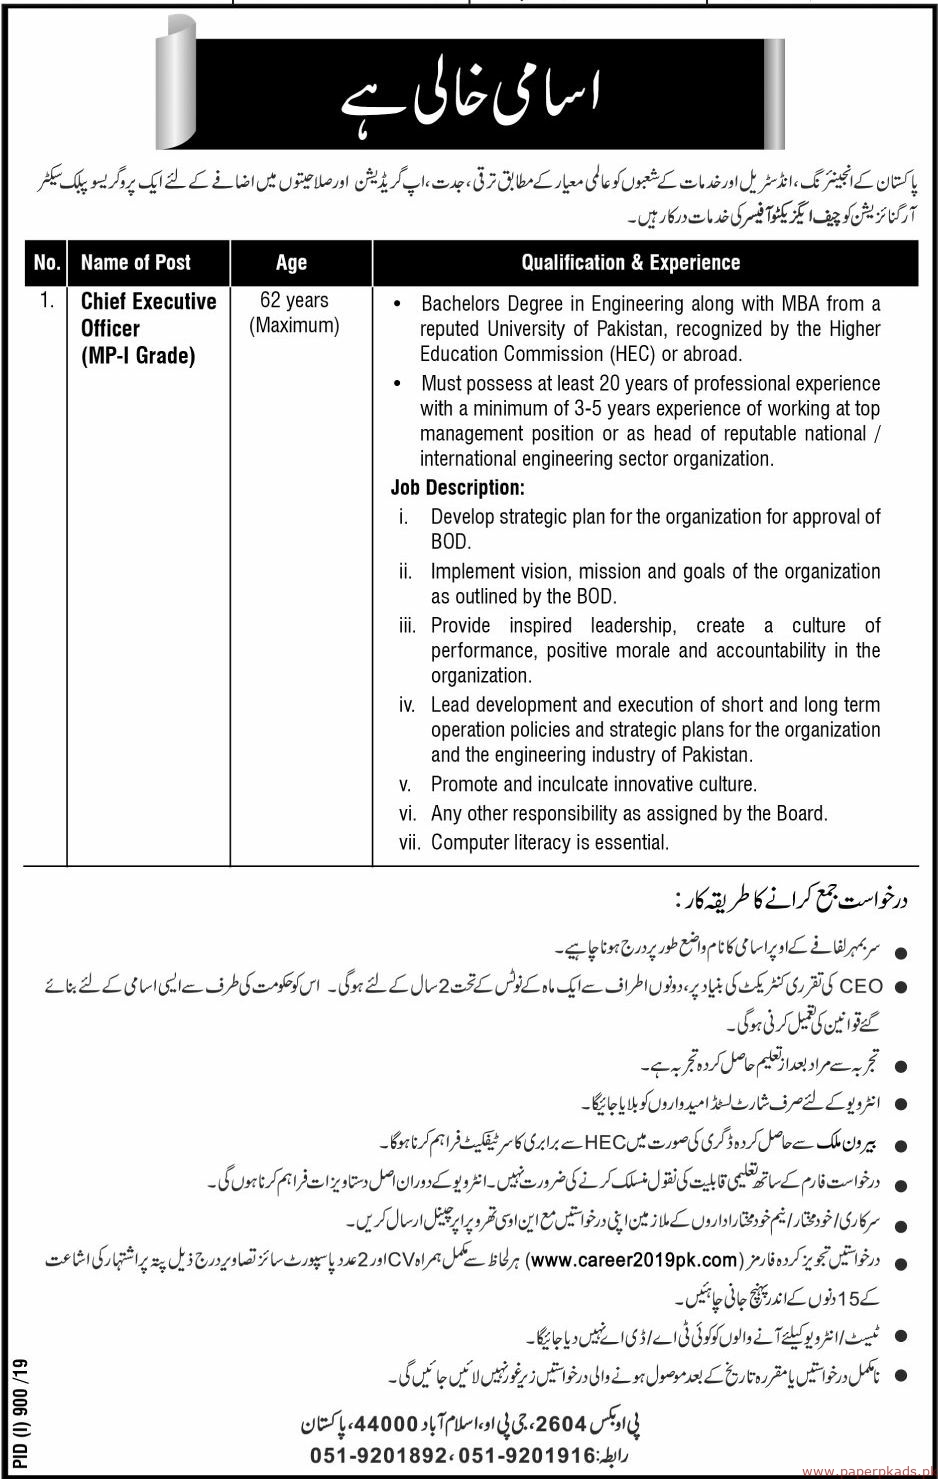 Progressive Public Sector Organization Jobs 2019 Latest